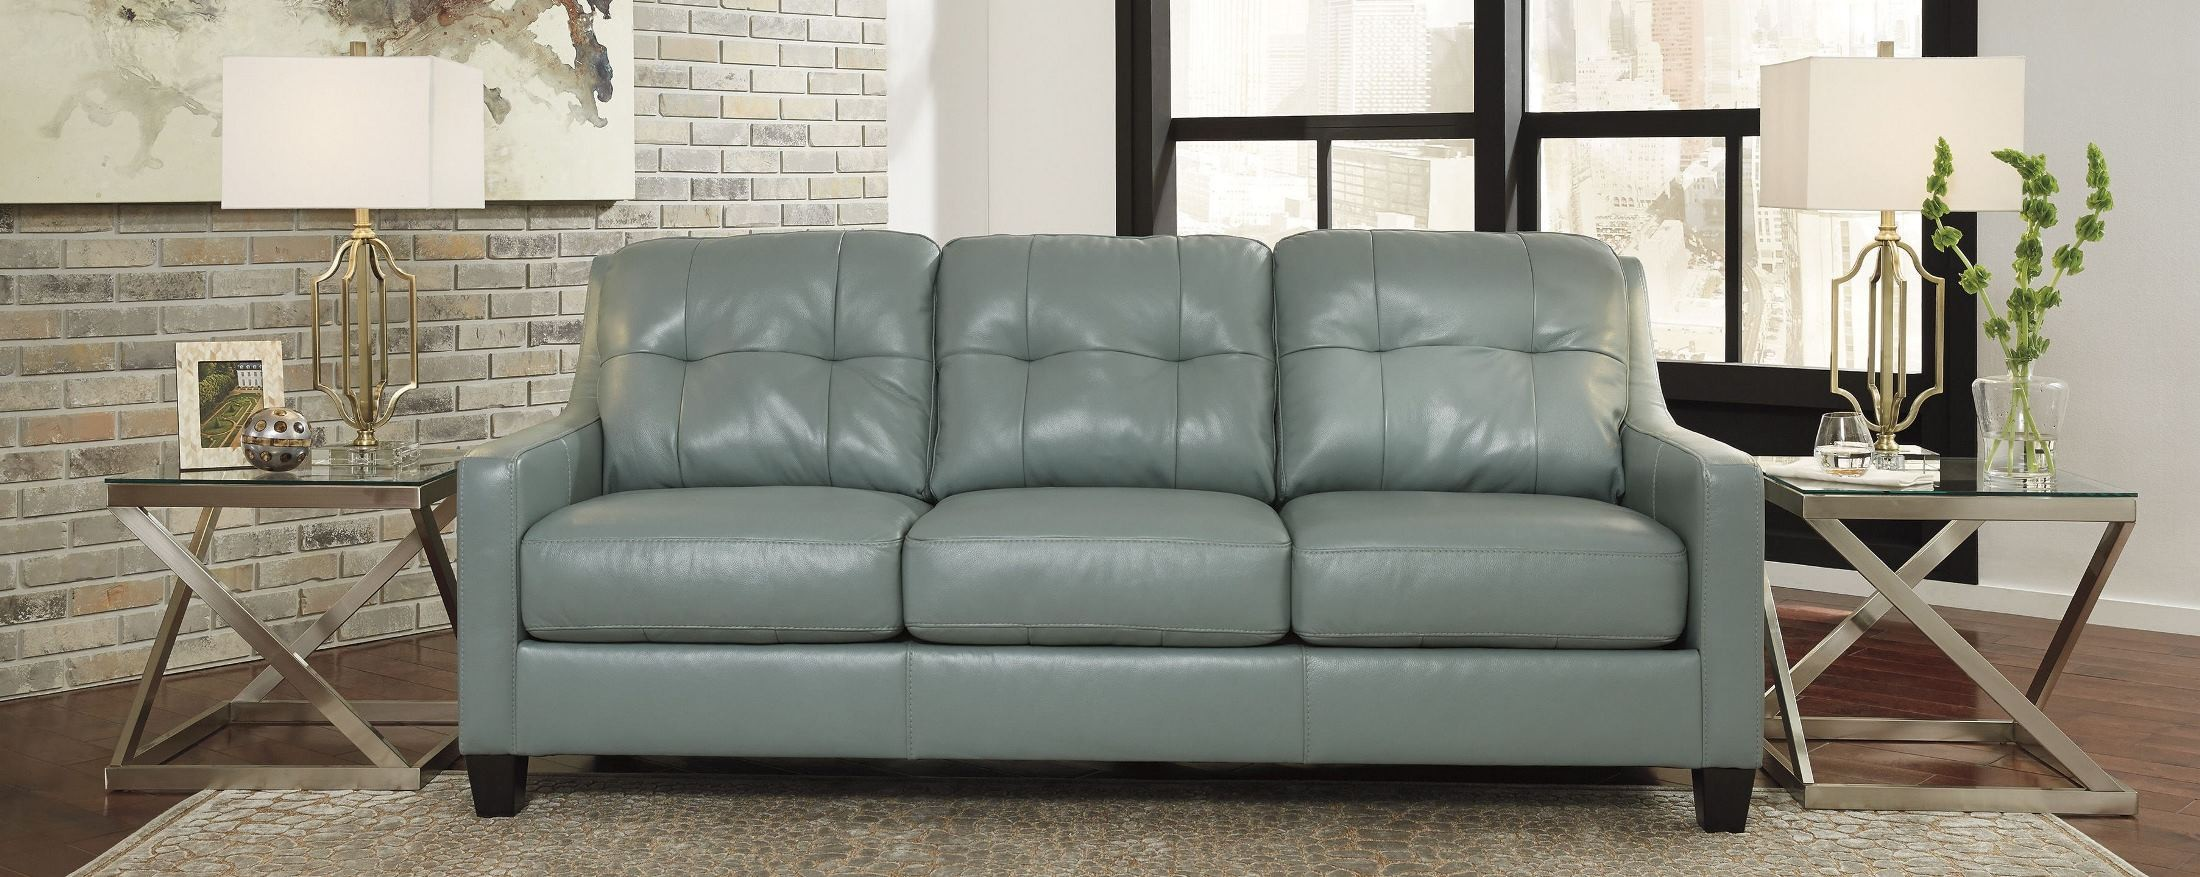 O Kean Sky Queen Sofa Sleeper From Ashley Coleman Furniture ~ Queen Sofa Sleeper Leather